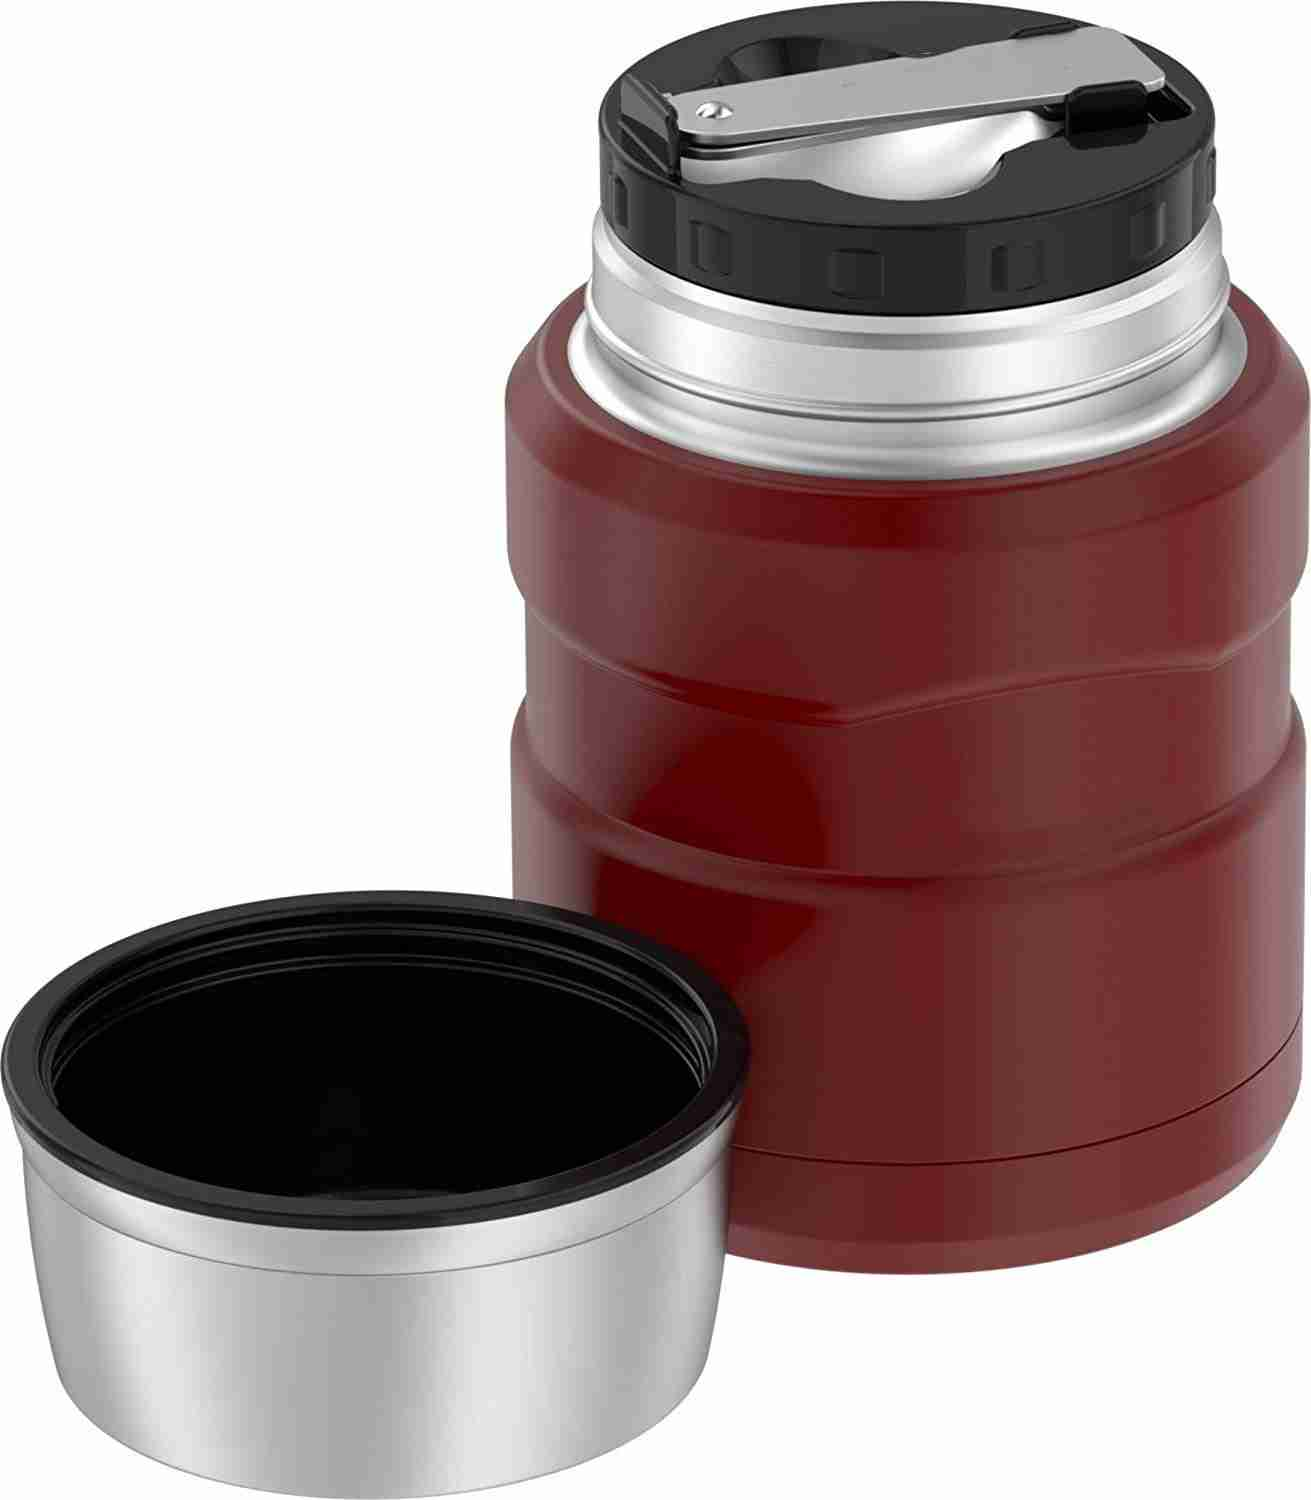 5 Reasons You Need a Thermal Lunch Box: The Stainless Steel Food Containers